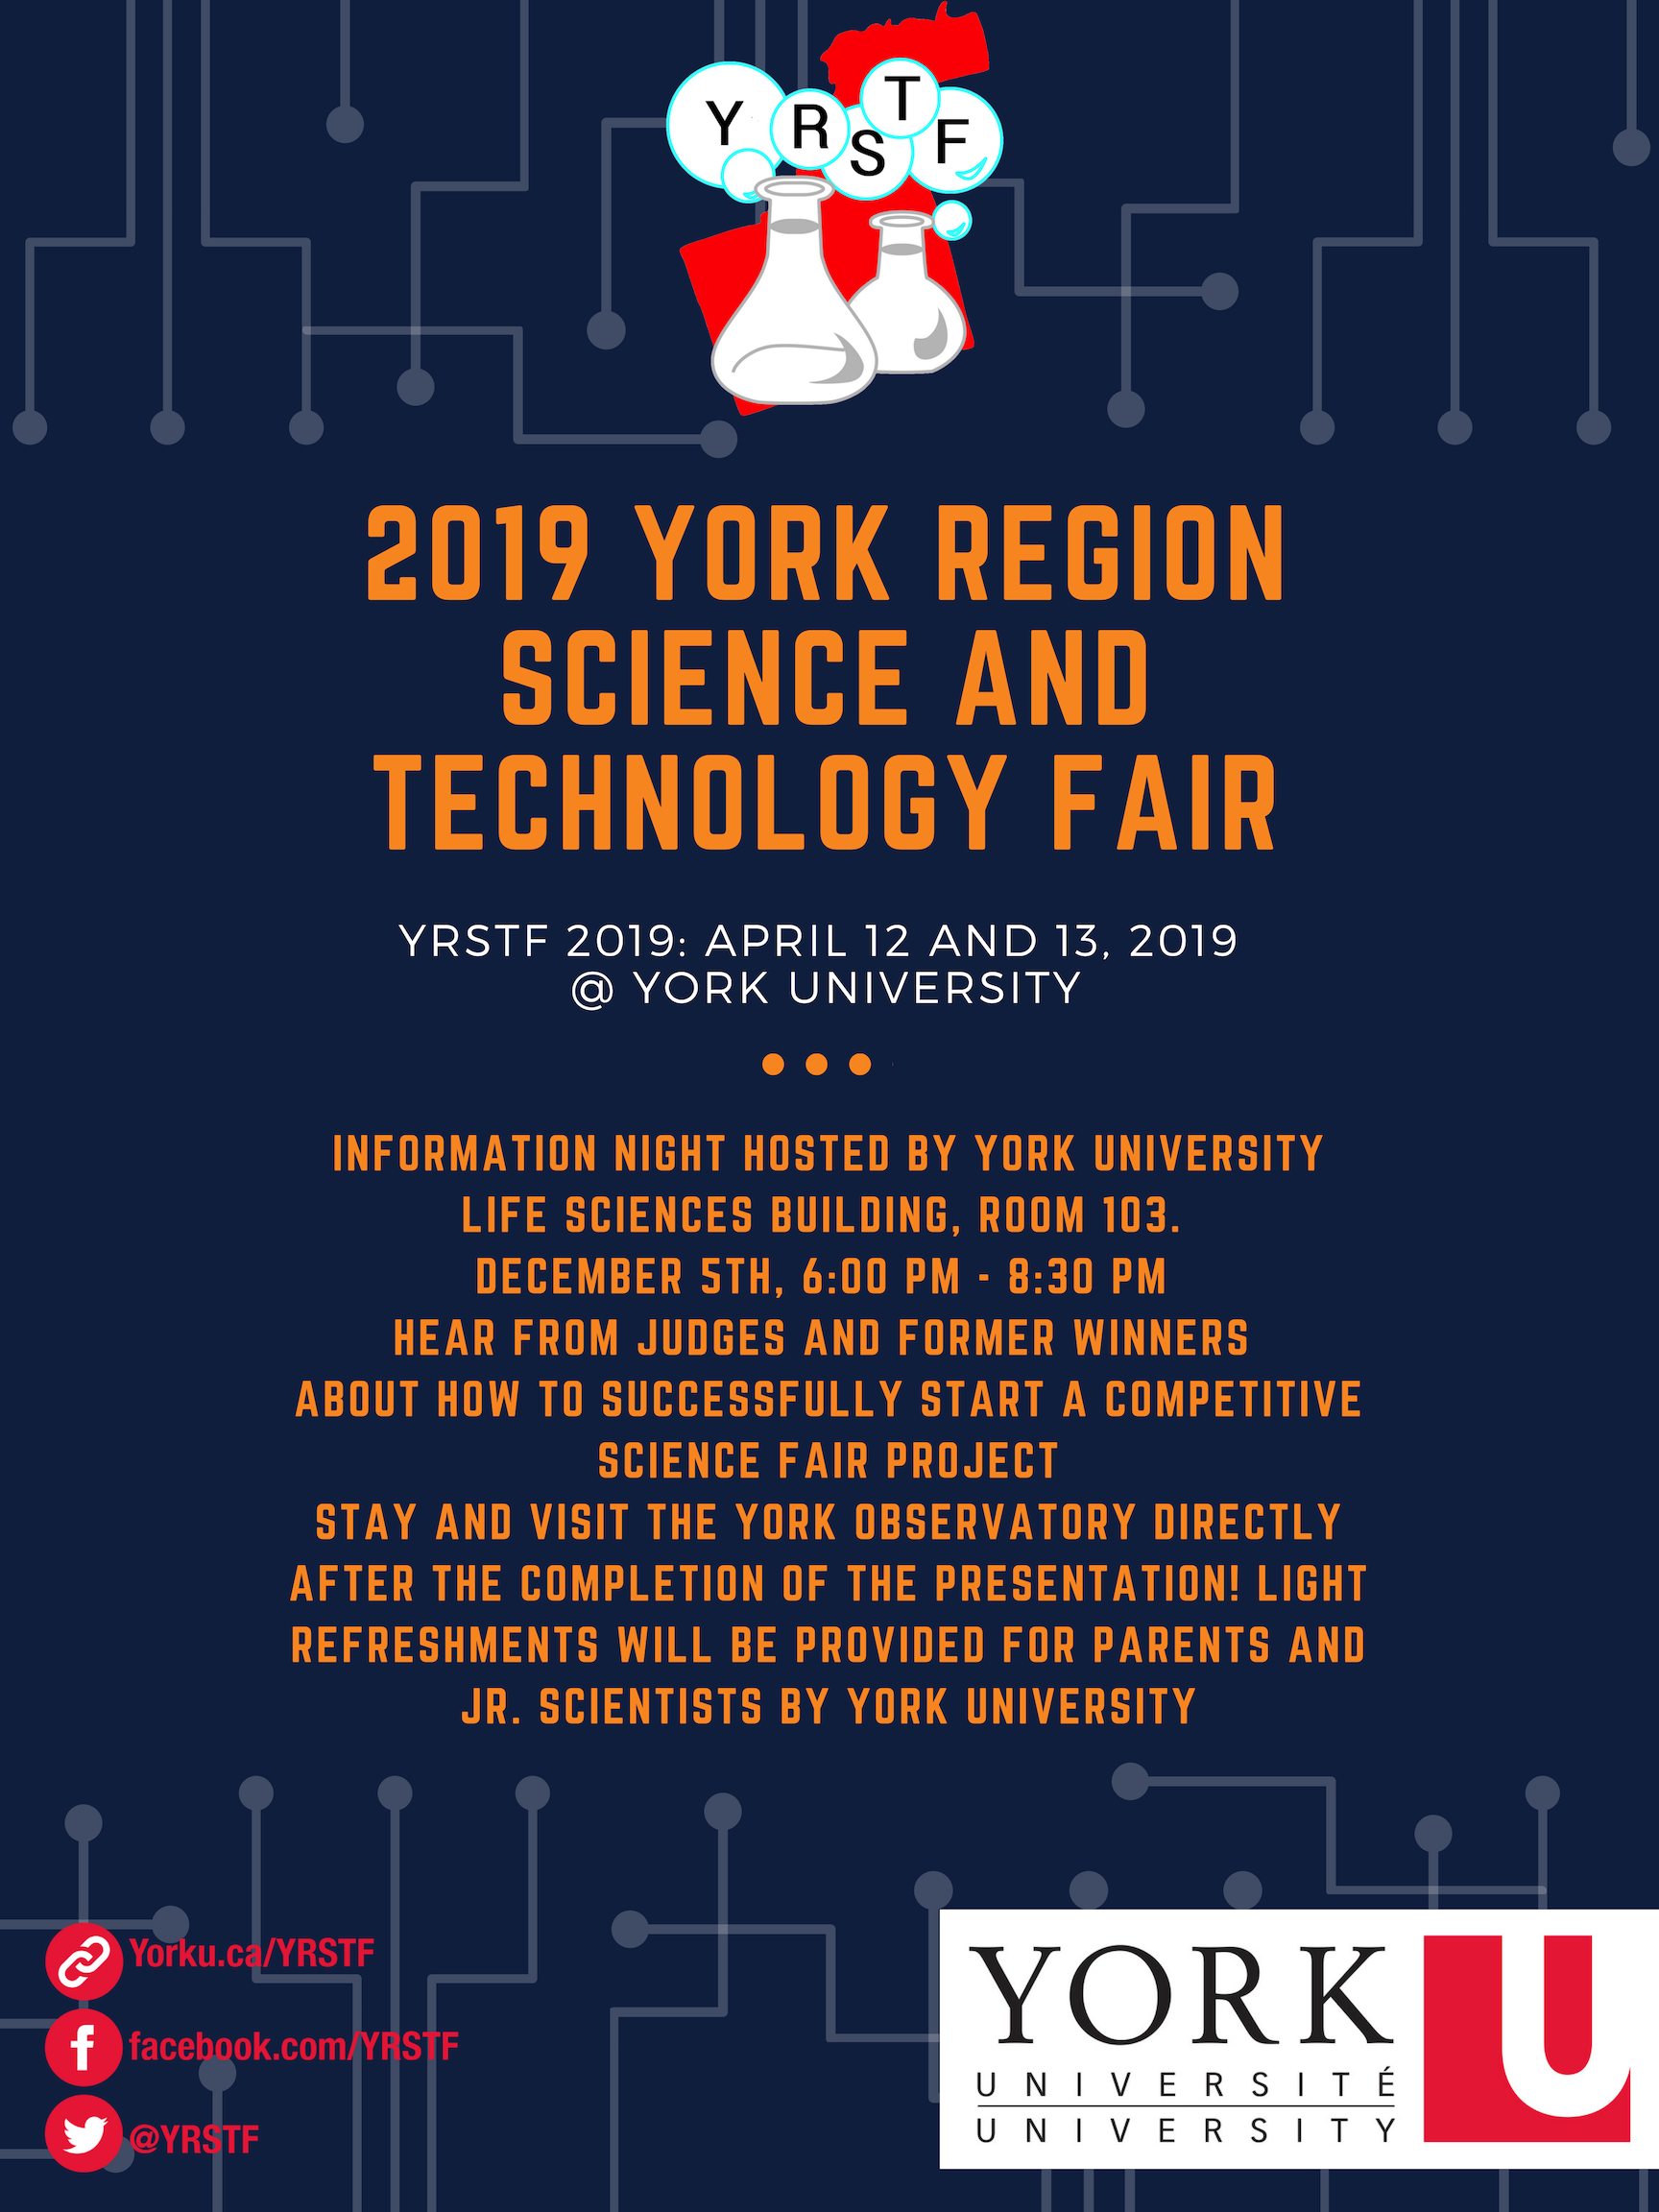 York Region Science and Technology Fair 2019